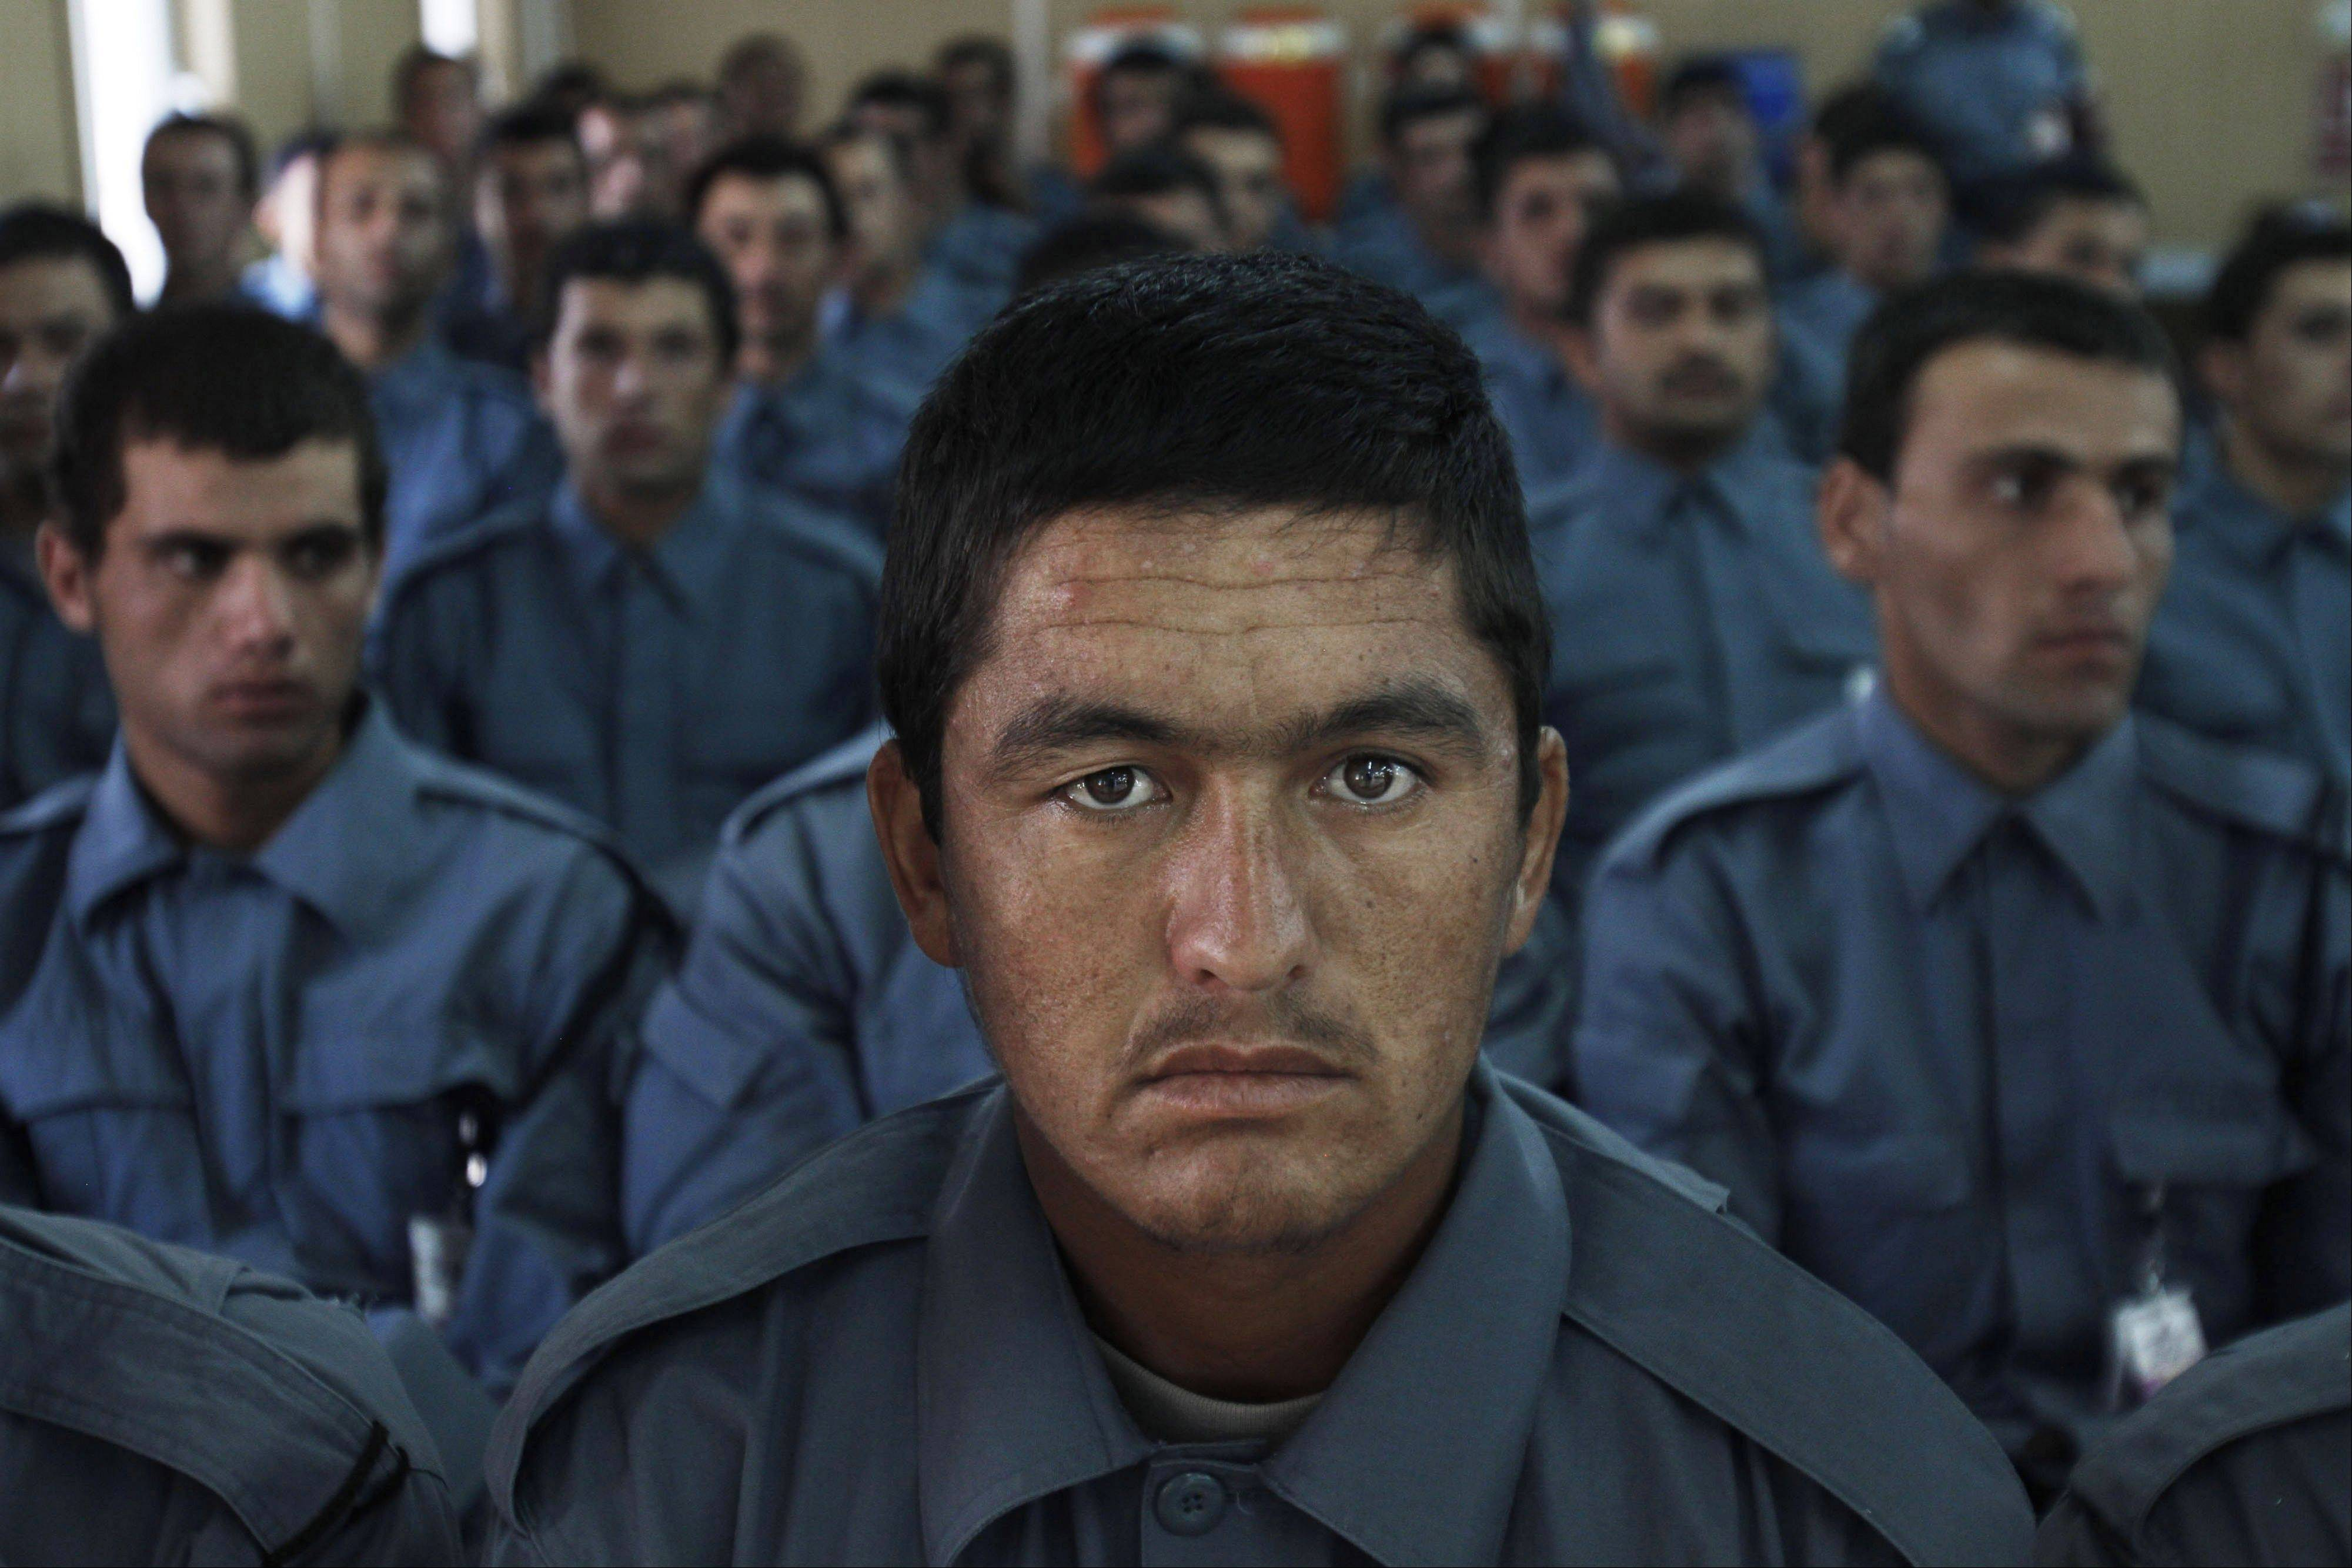 Afghan national police officers attend their graduation ceremony Thursday at a National Police training center in Jalalabad, east of Kabul, Afghanistan.